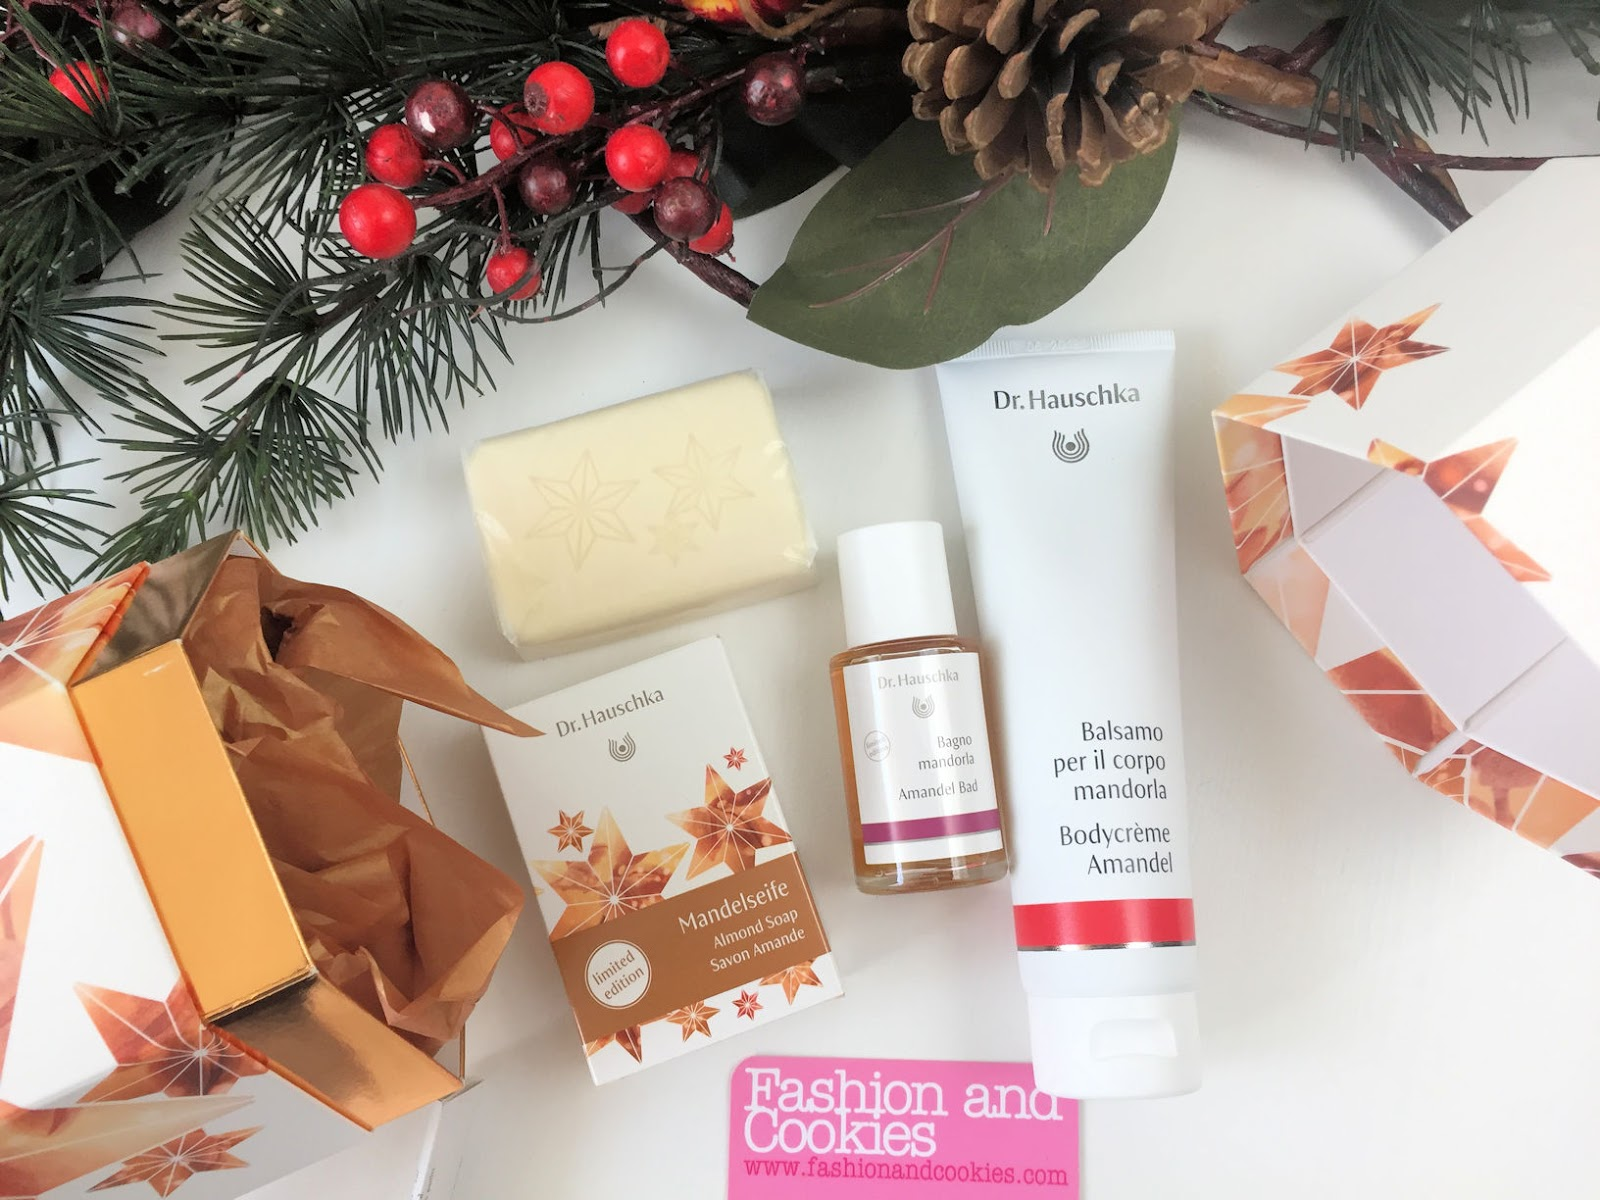 "Idee regalo Natale: cofanetto edizione limitata Dr. Hauschka ""Mandorle vellutate"" su Fashion and Cookies beauty blog, beauty blogger"